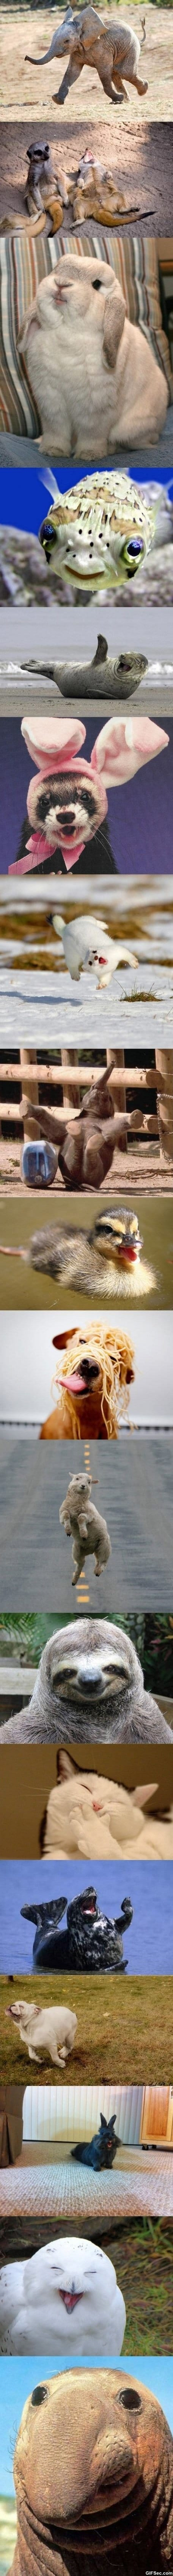 funny-worlds-happiest-animals